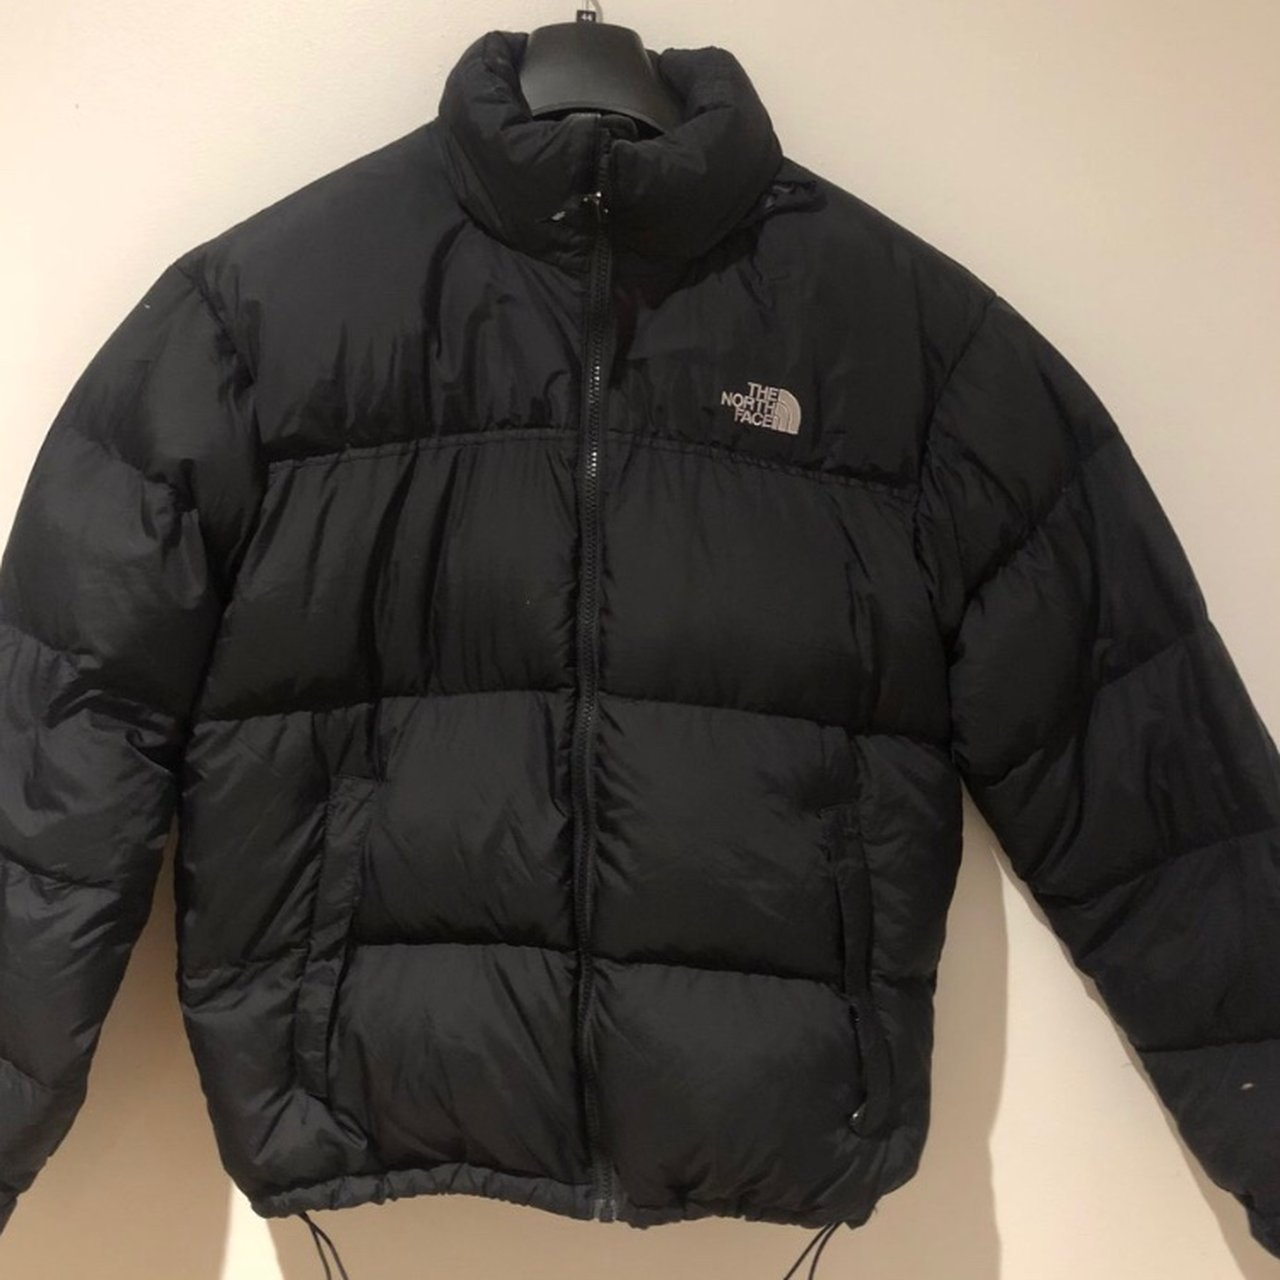 North Face 1996 Retro Nuptse Jacket Black puffer jacket M - Depop e3712033c